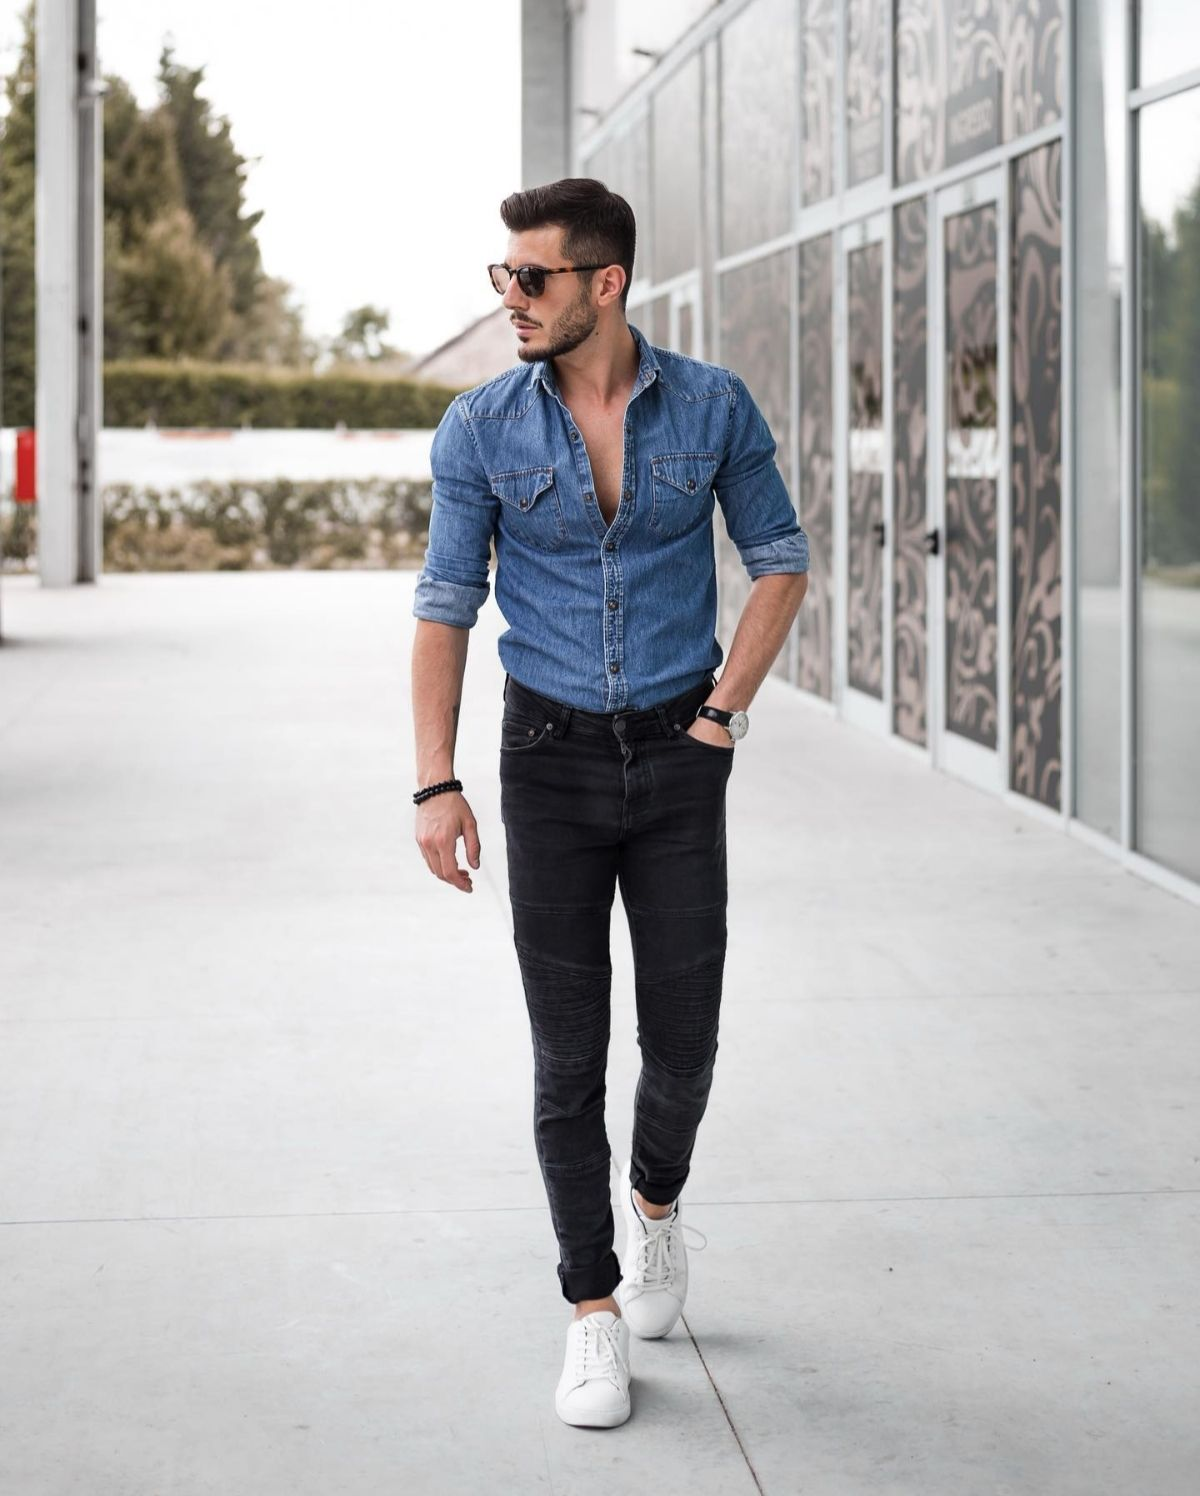 Camisa jeans masculina: dicas de como usar | Mens casual outfits, Jean  jacket outfits men, Mens fashion casual outfits